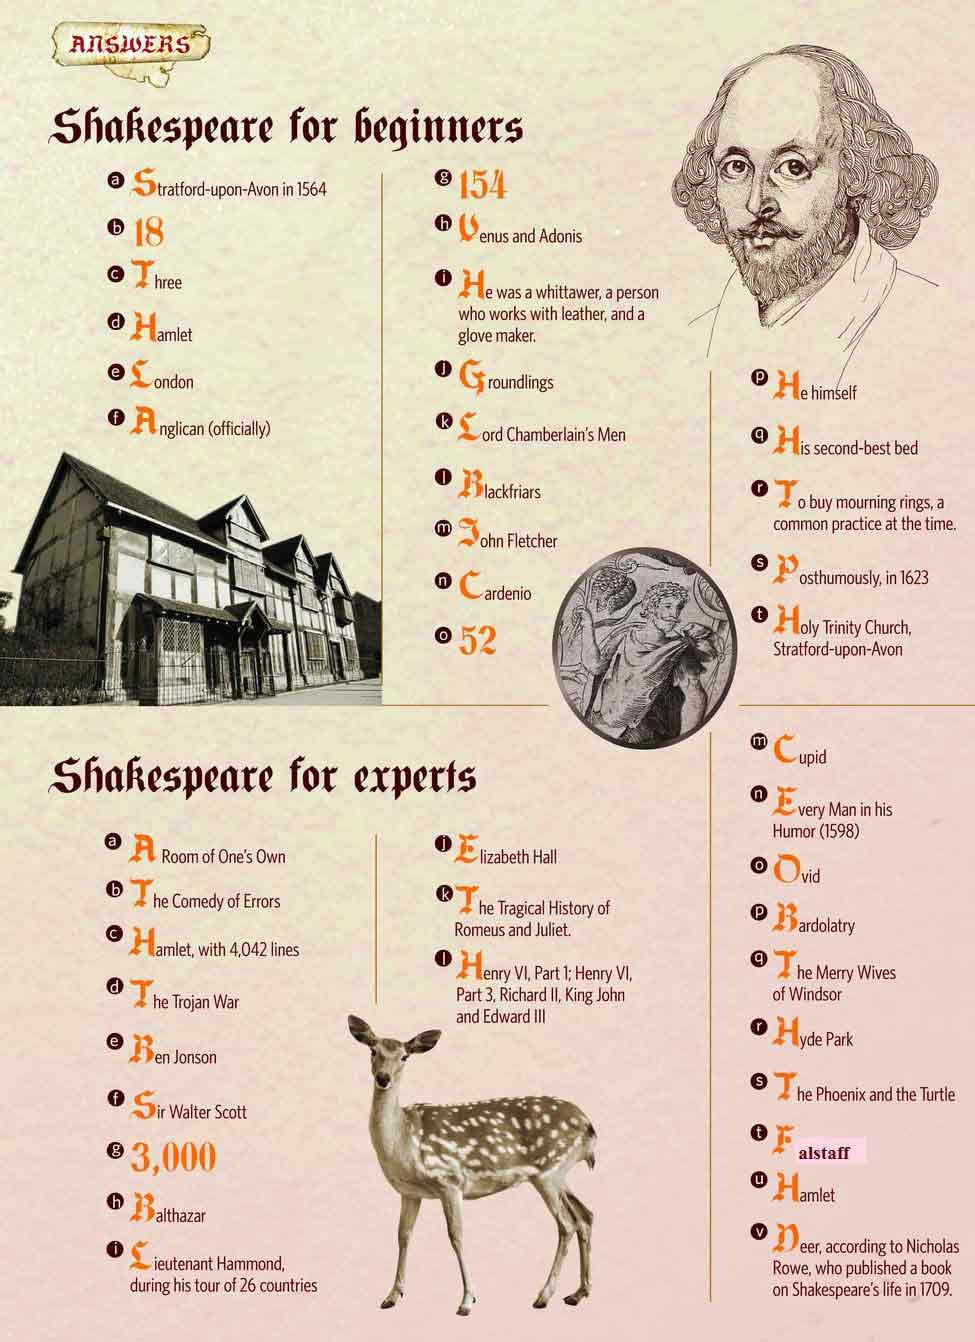 117Shakespeareanswers